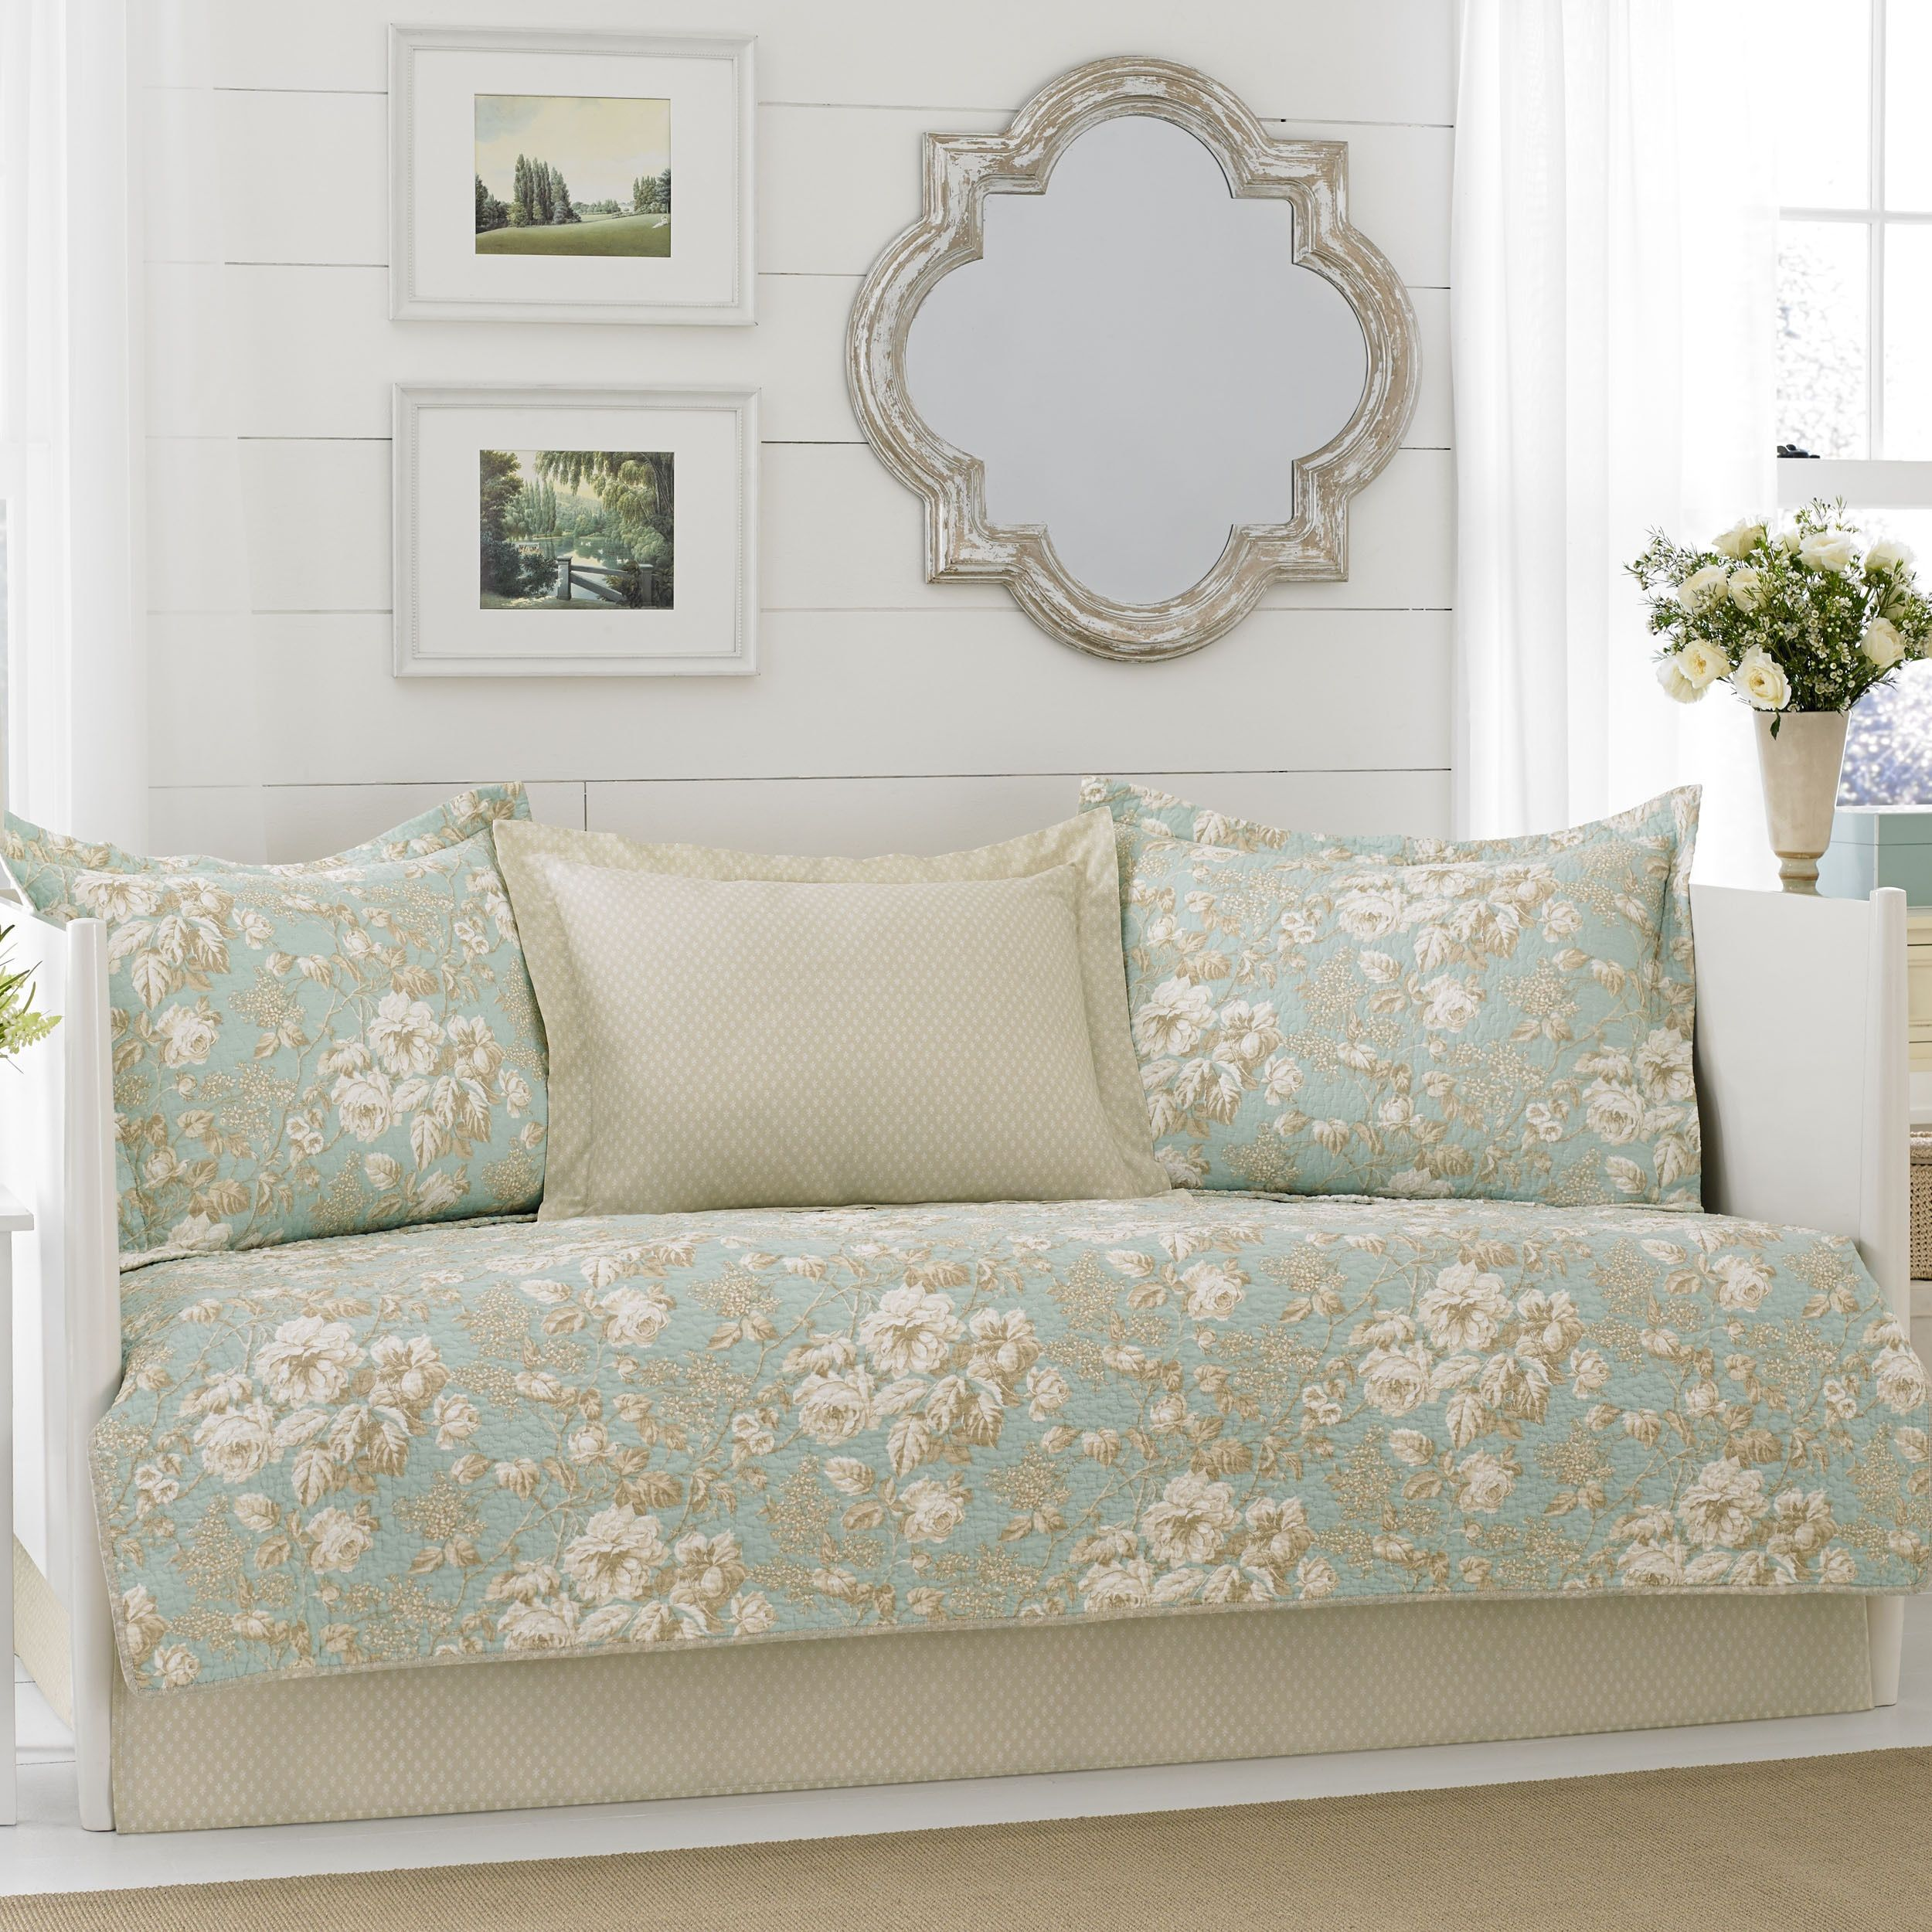 Laura ashley brompton serene piece daybed cover set by laura